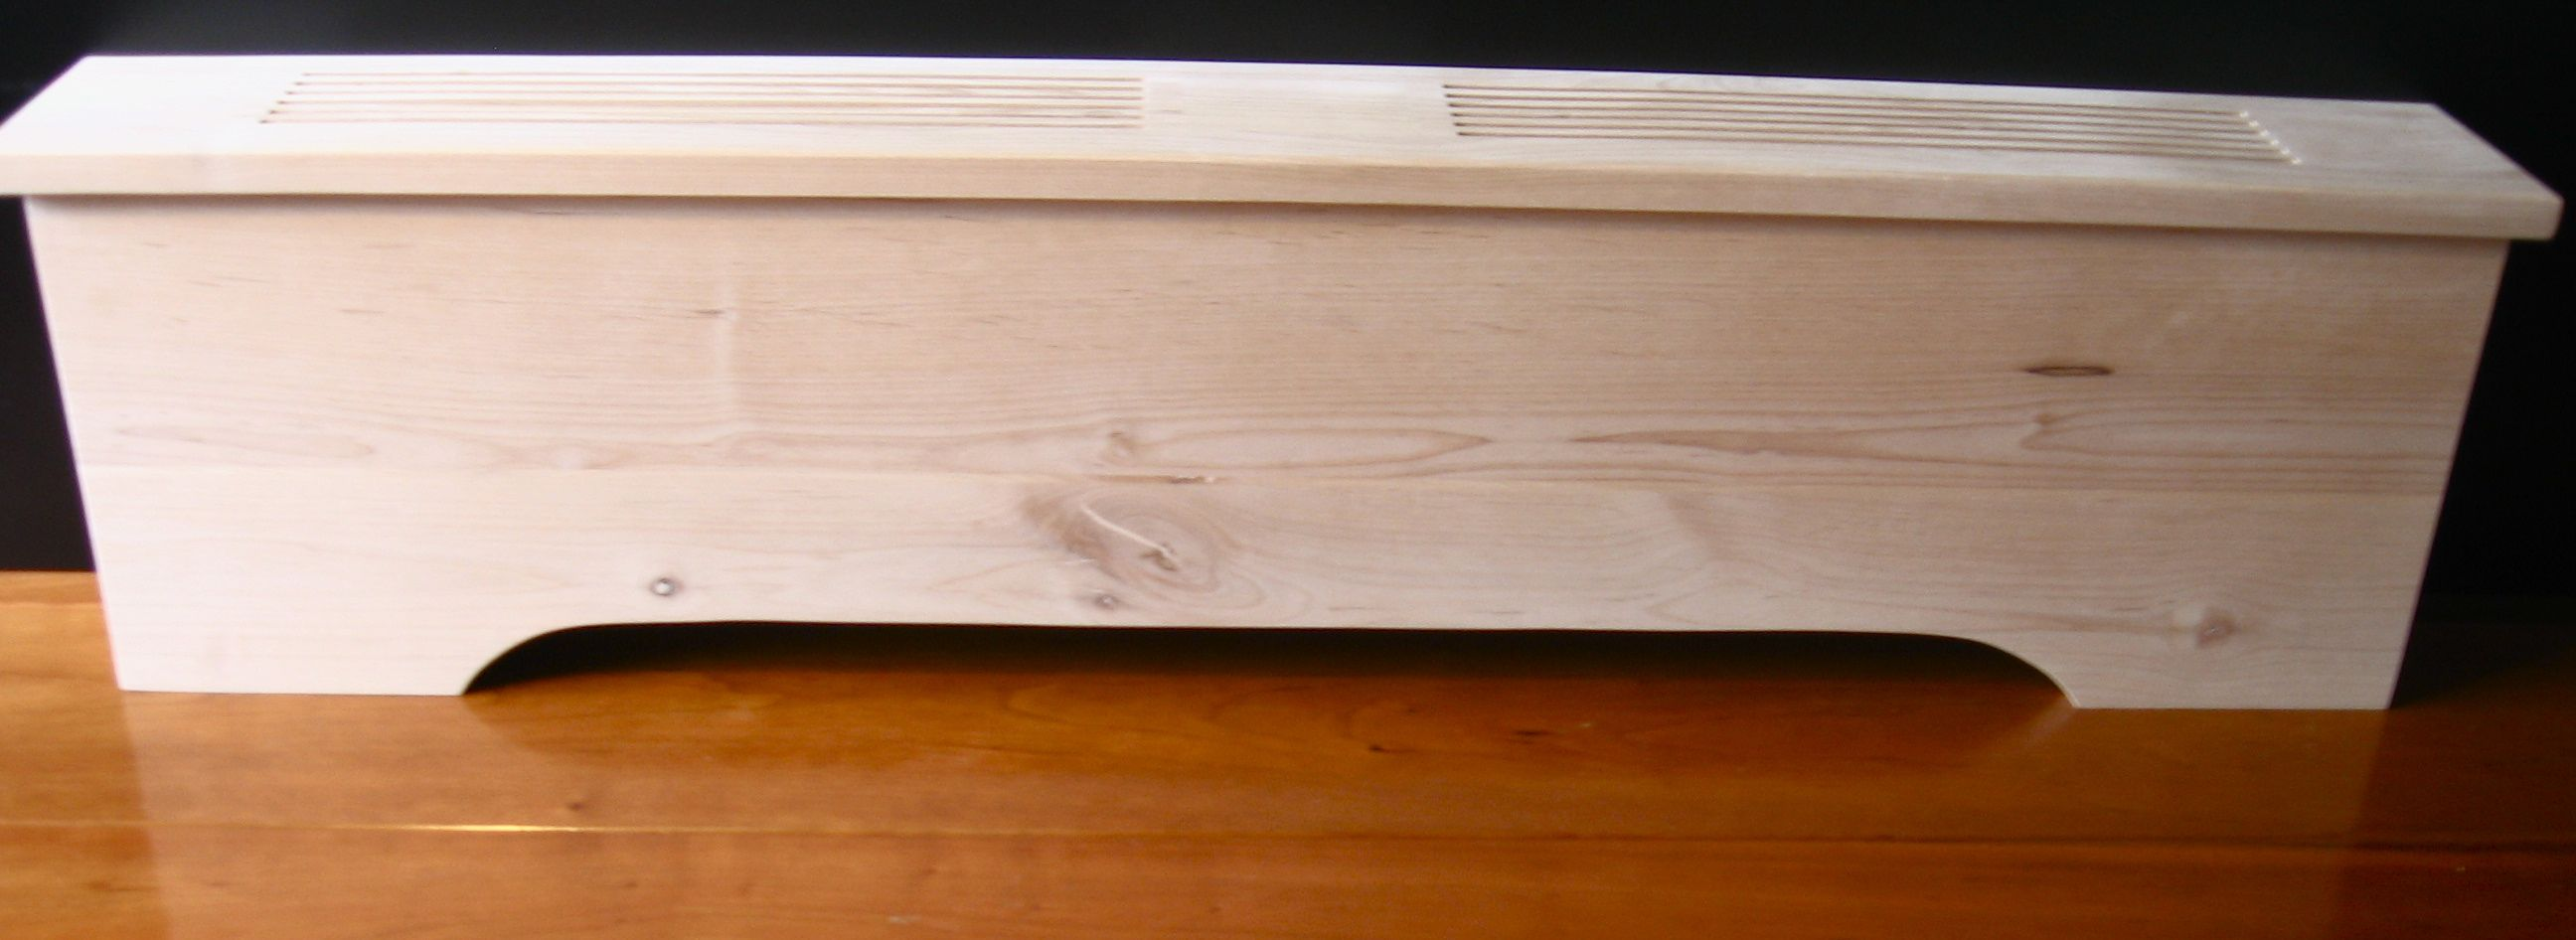 Wooden Baseboard Heater Cover Get Rid Of The Rusty Metal Monsters Johansonwooddesigns Com Baseboard Heater Covers Baseboard Heater Baseboard Trim